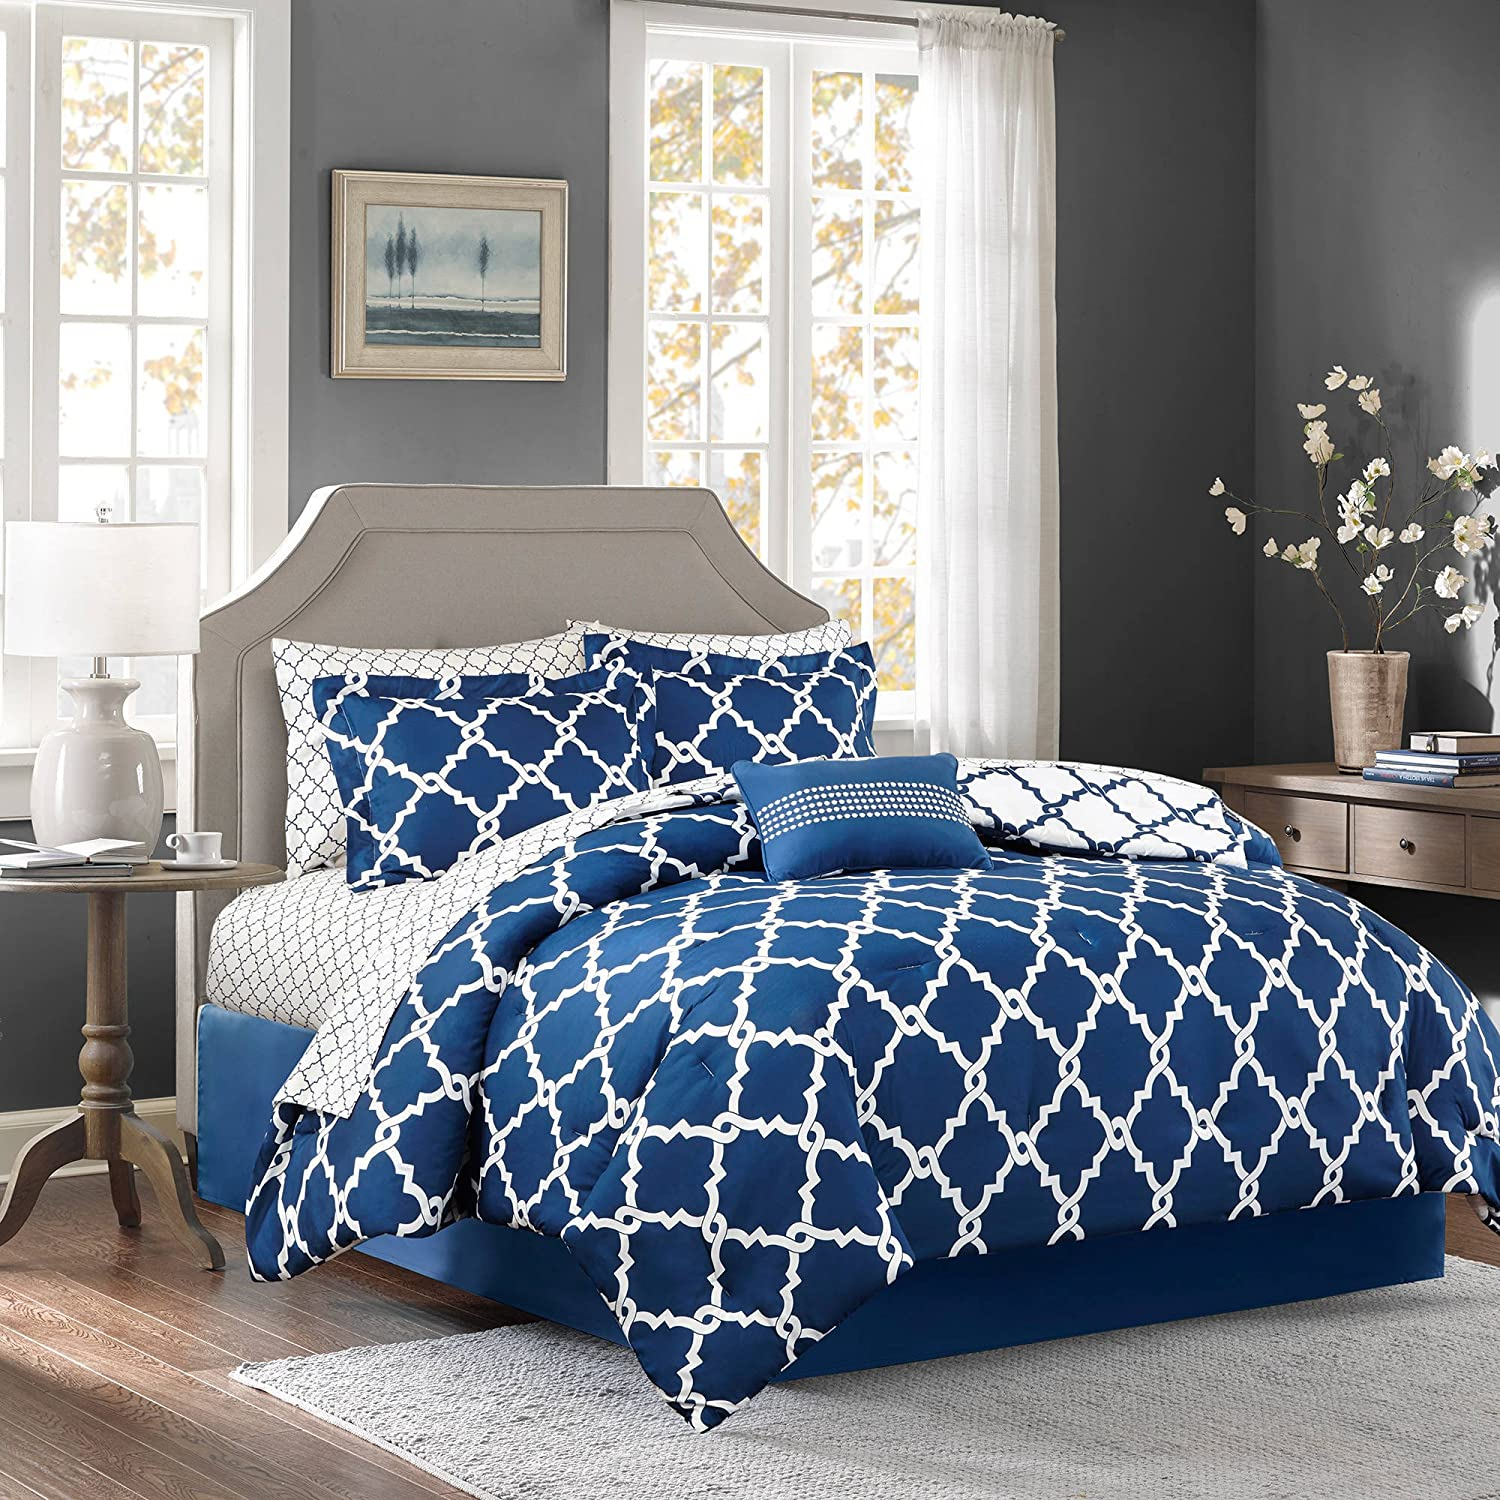 7 Piece Girls Navy Blue Color Moroccan Comforter Set Twin With Sheets, Beautiful Quatrefoil Fretwork Lattice Geometric Pattern Bold Dark Blue Base Chic, Reversible White Teen, Microfiber